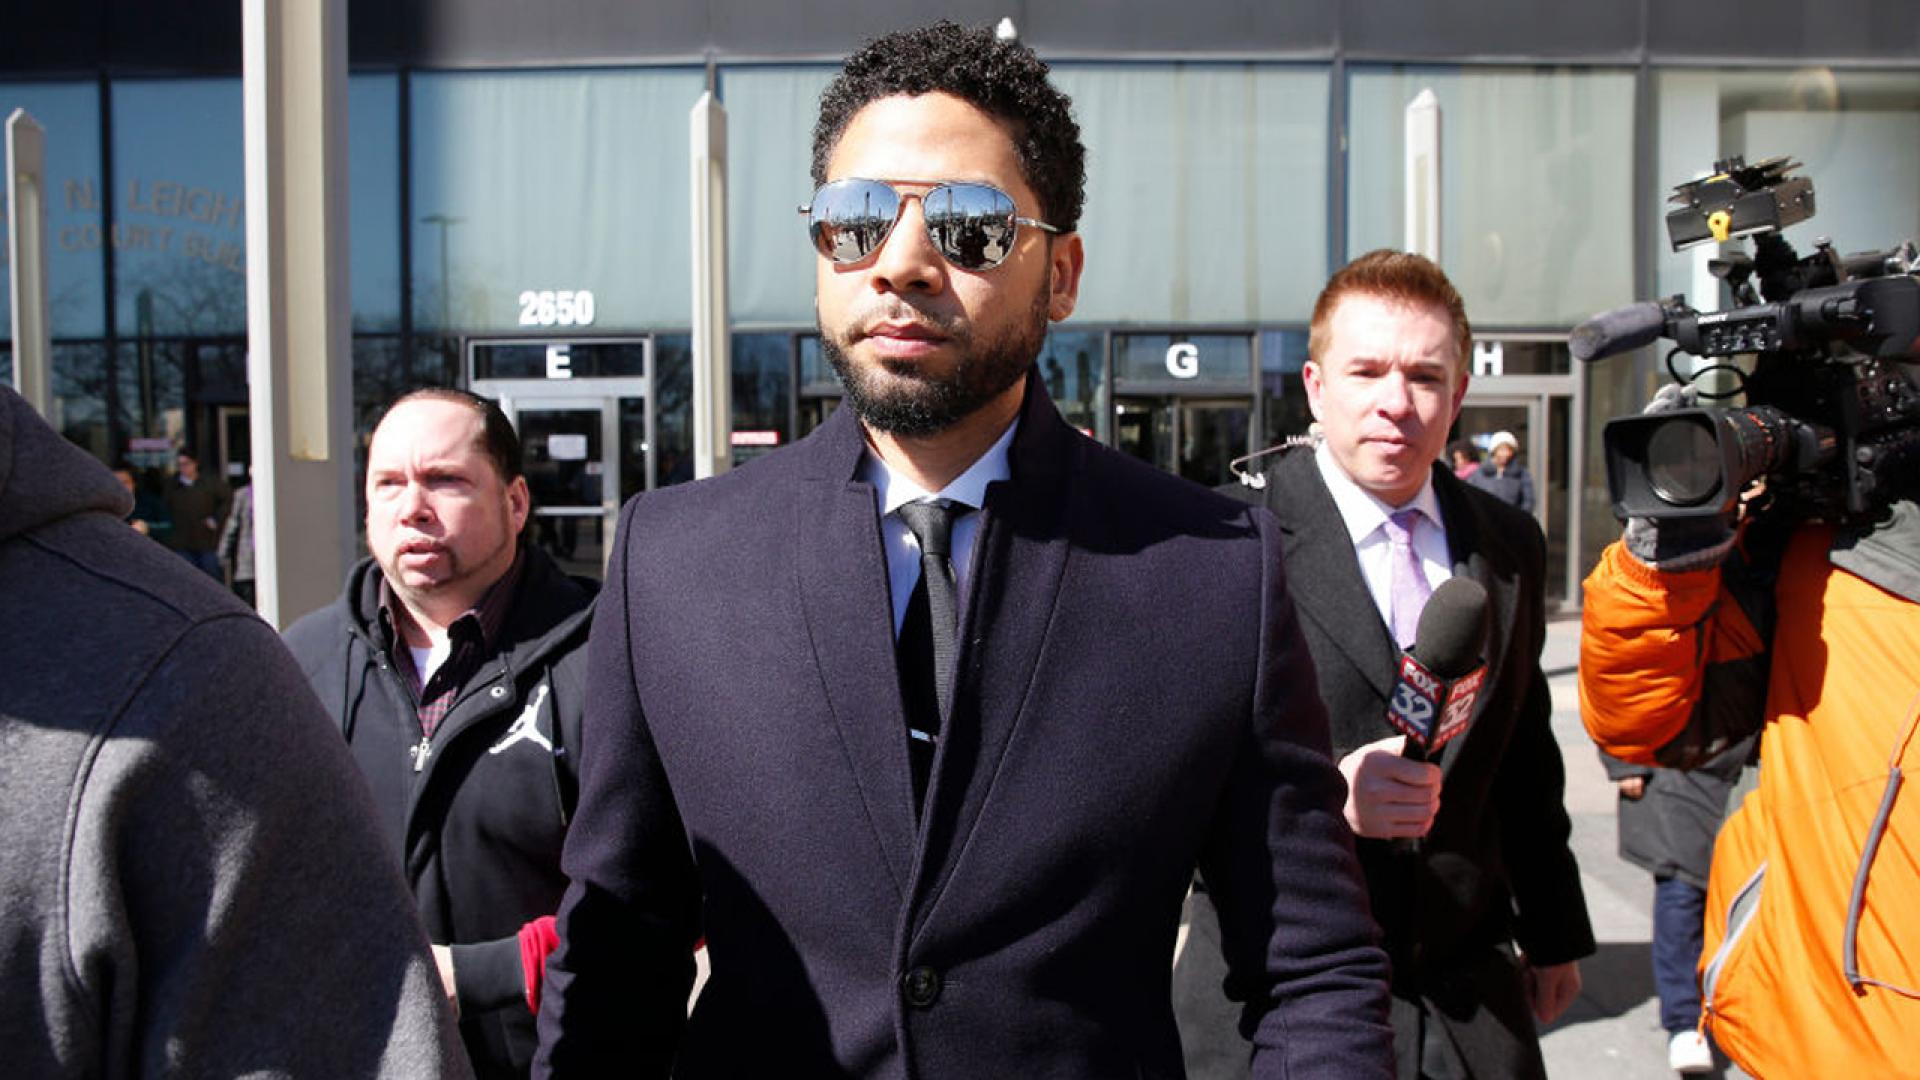 Jussie Smollett has been charged again.